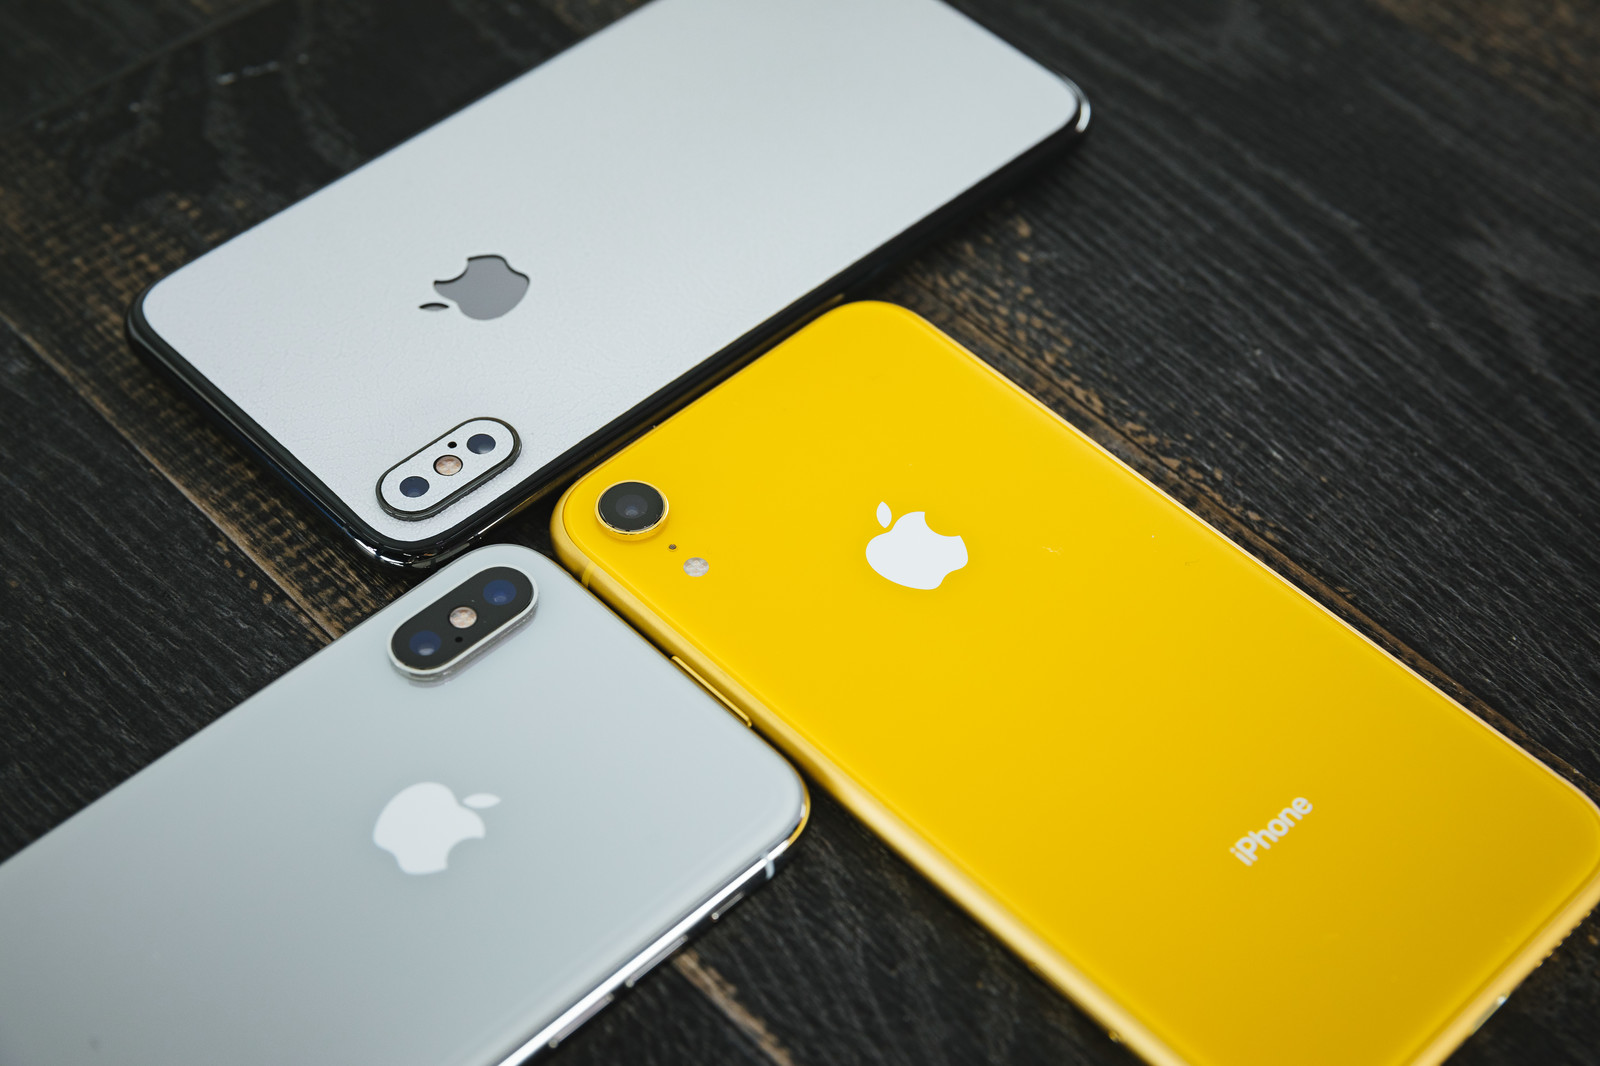 「iPhone XS と iPhone XR 」の写真